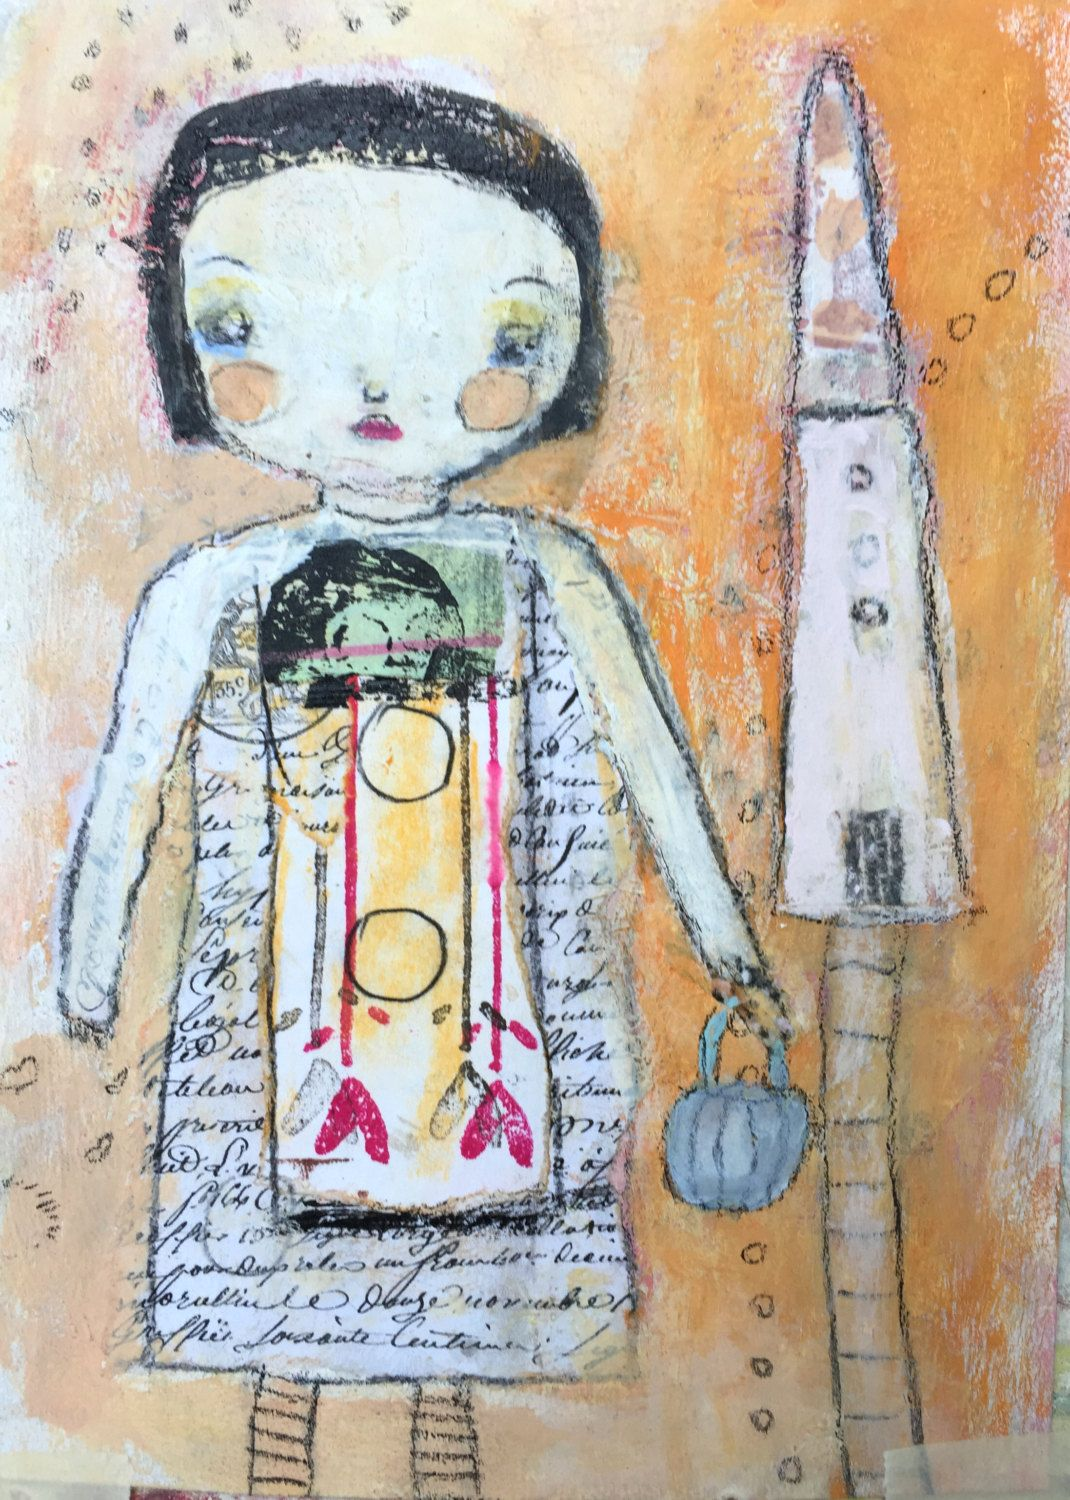 Naive Child Art - Outsider Art - Home Decor Art - Home Sweet Home - Whimsy Painting - Girls Nursery Art - Childish Painting by BumblesArtWorks on Etsy